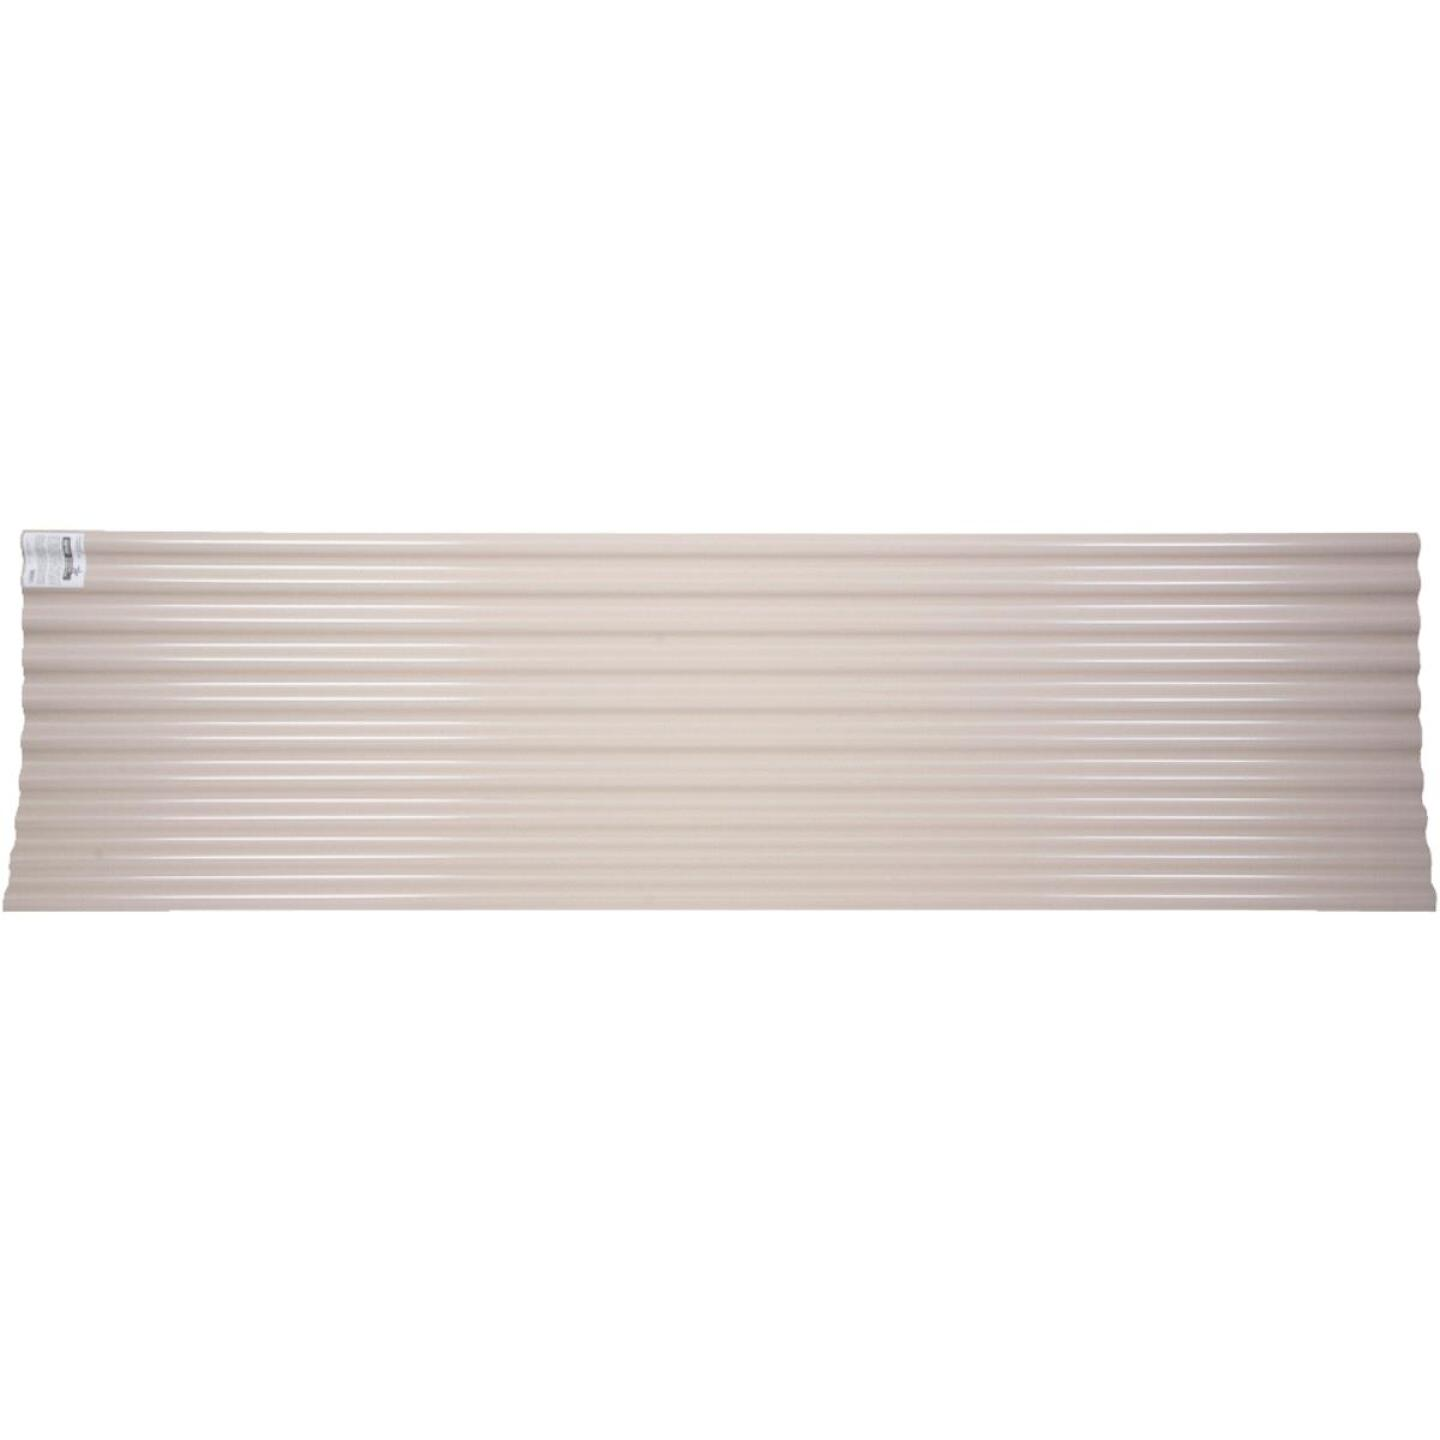 Tuftex Seacoaster 26 In. x 12 Ft. Opaque Tan Round Wave Polycarb & Vinyl Corrugated Panels Image 1